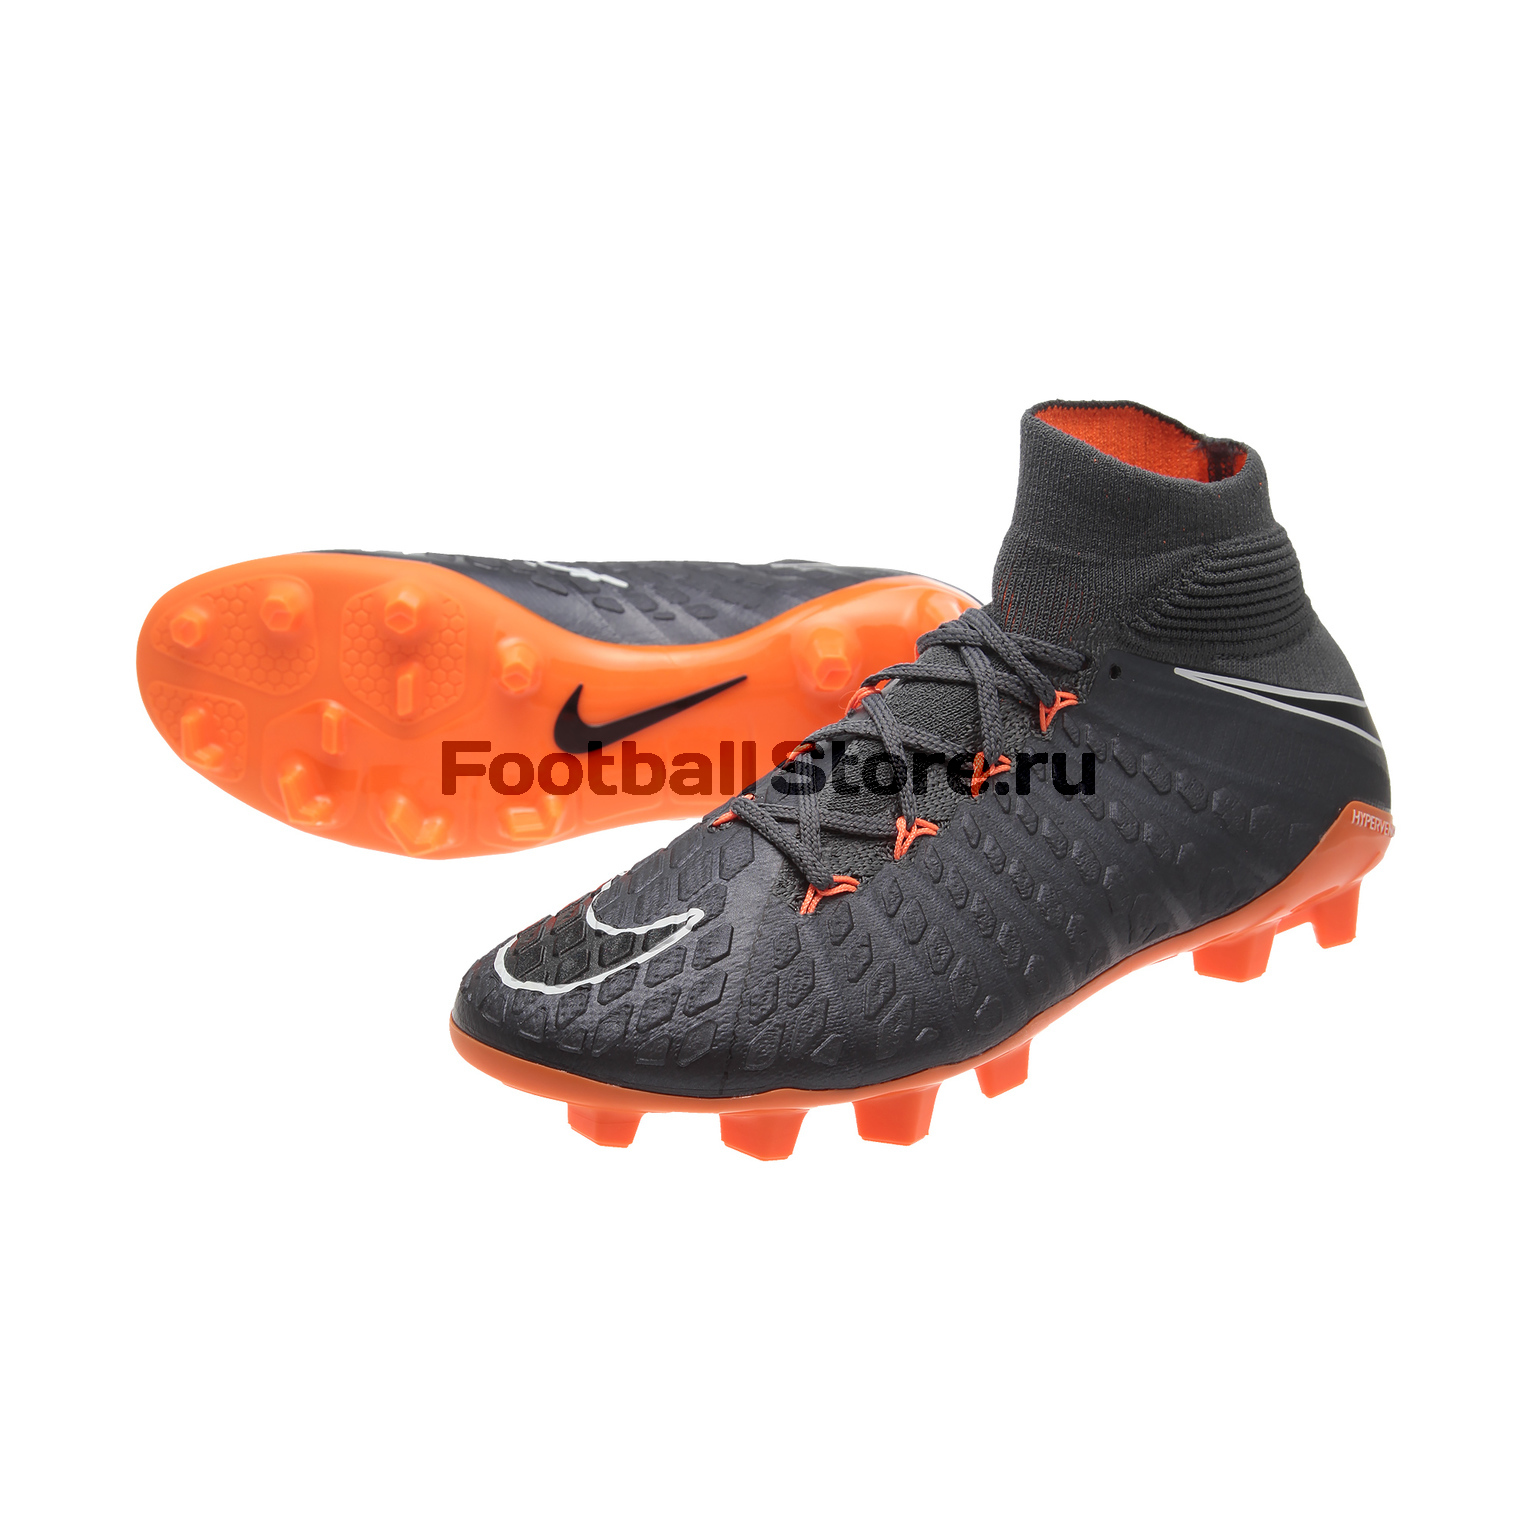 Бутсы Nike JR Phantom 3 Elite DF FG AH7292-081 бутсы nike phantom 3 academy ag pro ah8845 081